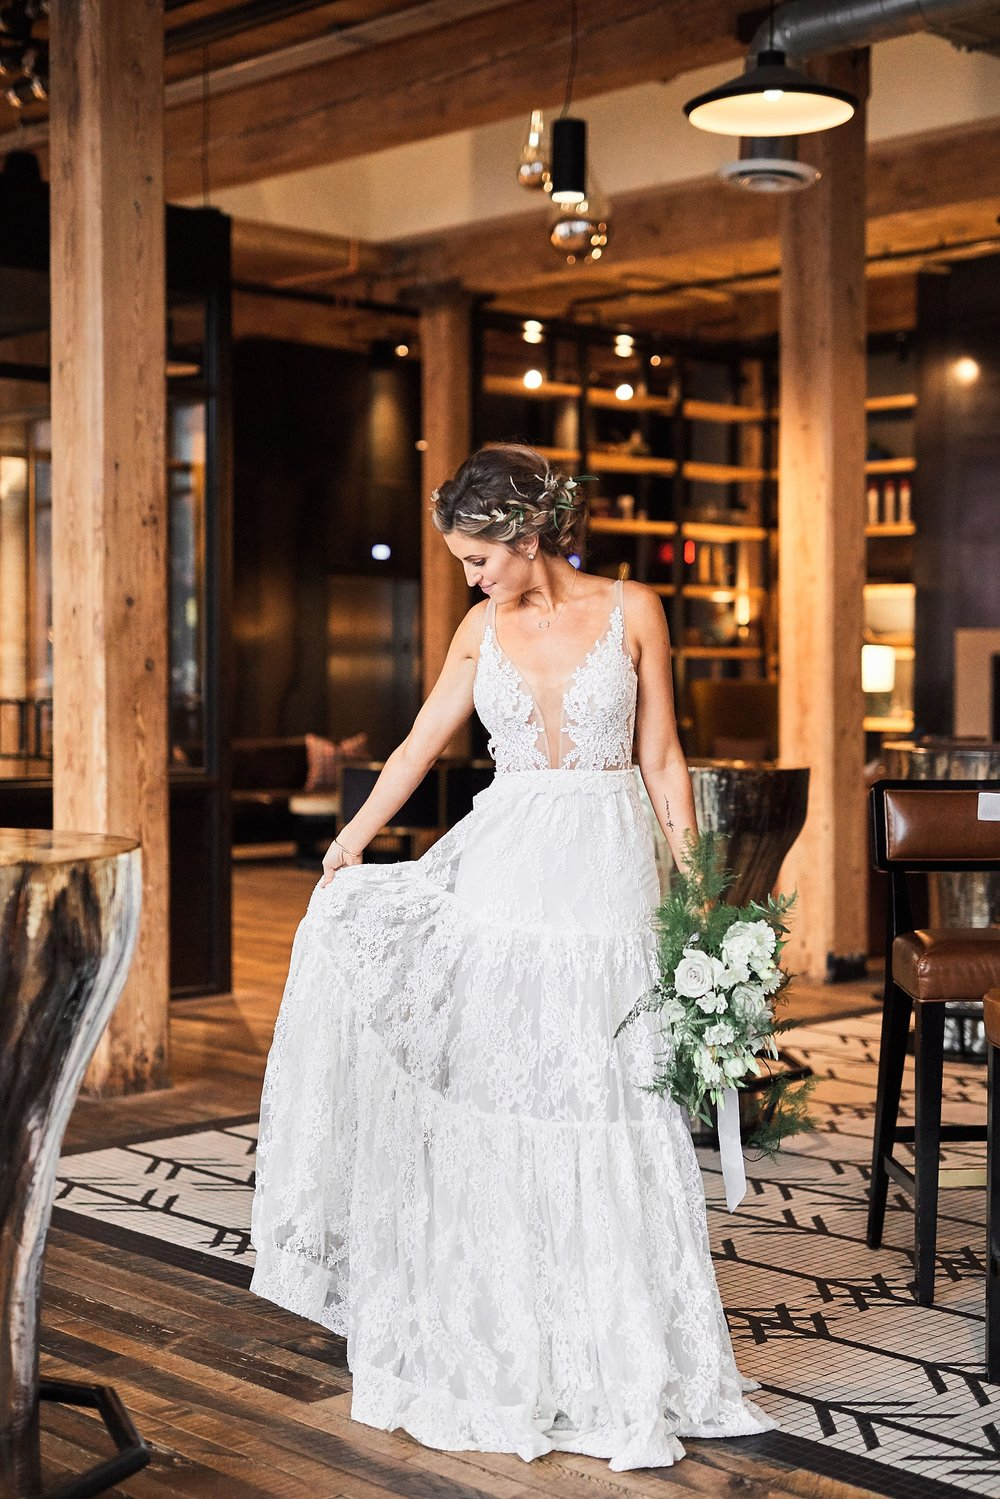 Hewing-Hotel-Minneapolis-Minnesota-Wedding-Rooftop-Bride-Engaged_1205.jpg